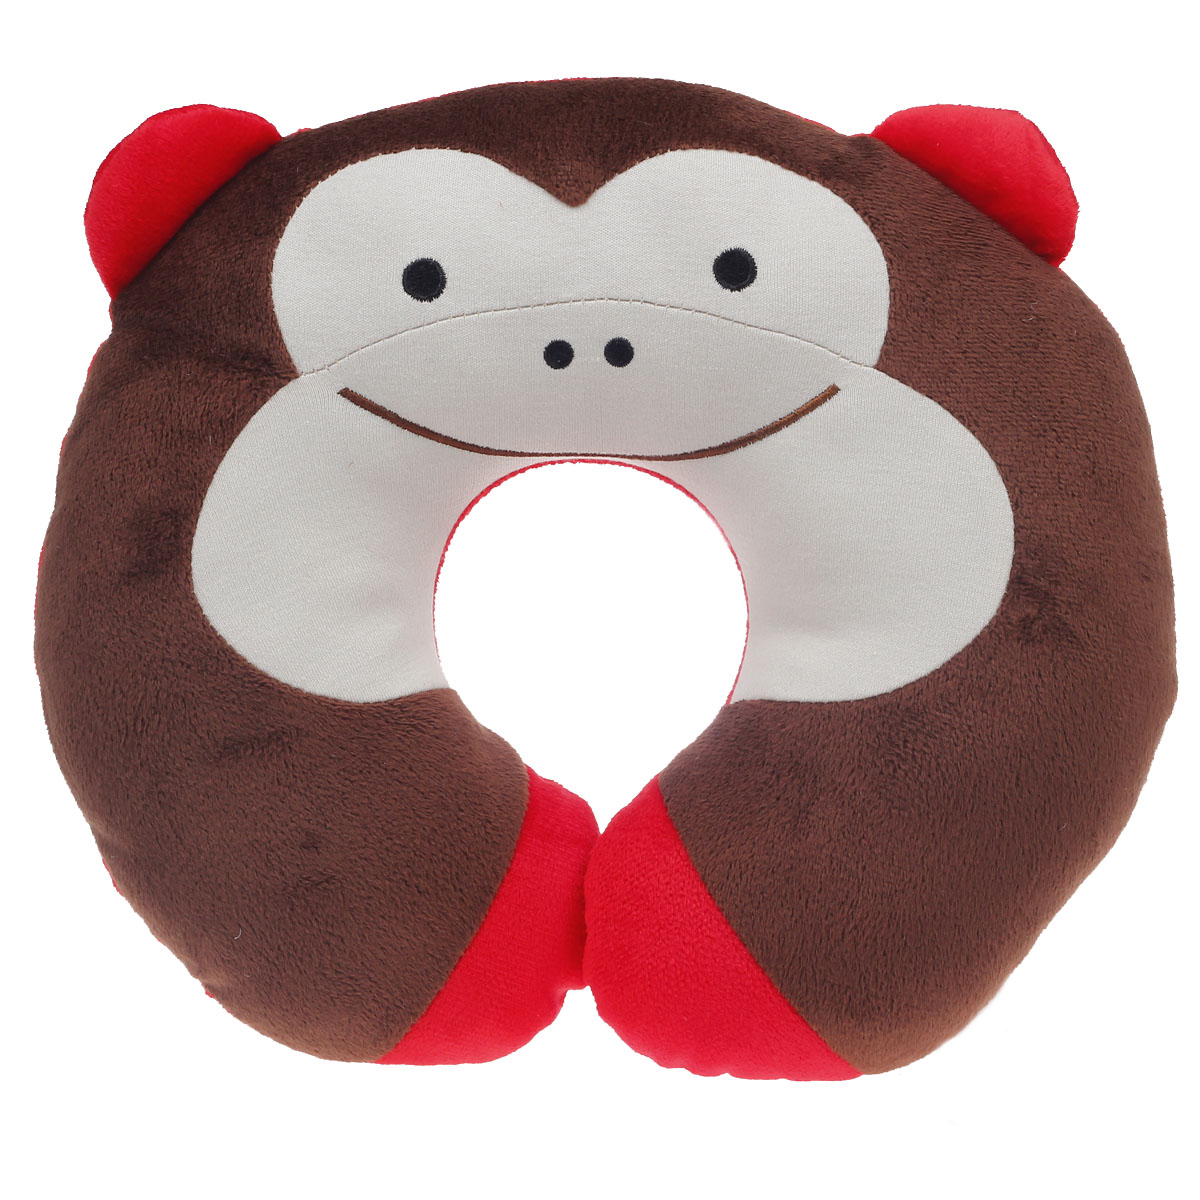 Cute Neck Pillows For Travel : Cute Monkey Style U Type Neck Pillow Brown + Red + Ivory-in Travel Pillows from Home & Garden on ...